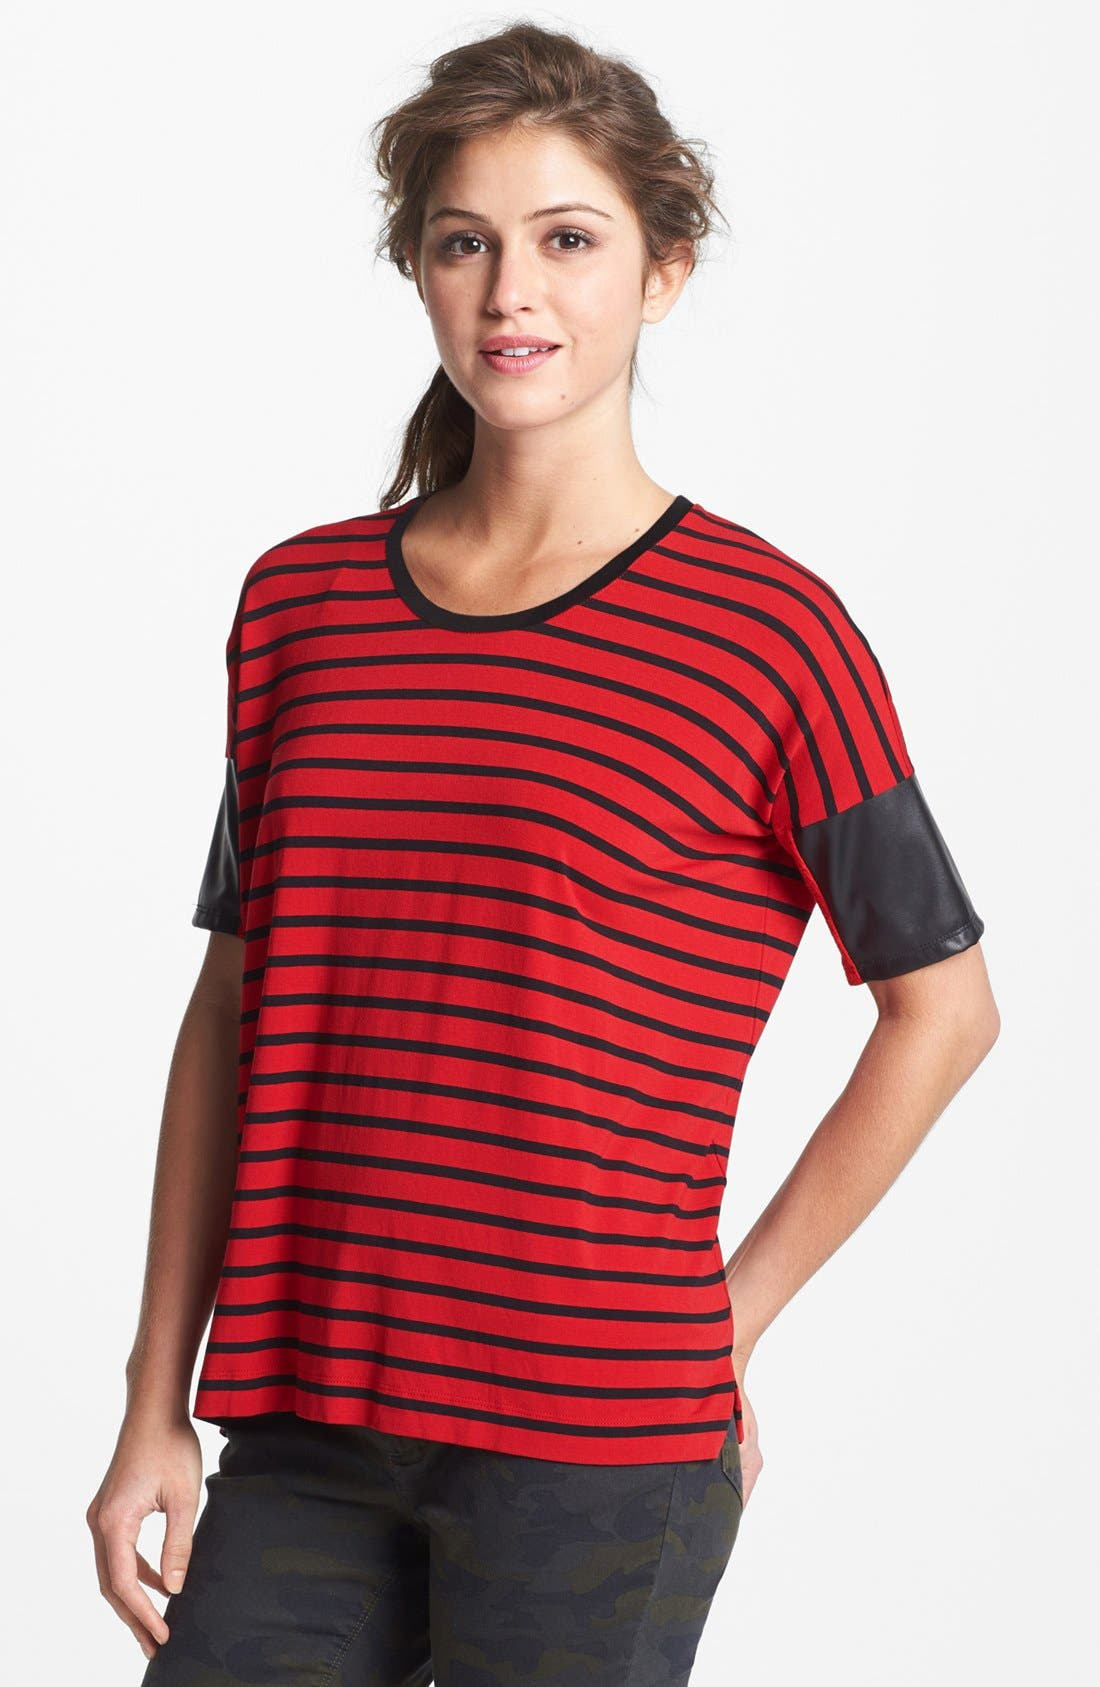 Alternate Image 1 Selected - Two by Vince Camuto Faux Leather Sleeve Stripe Tee